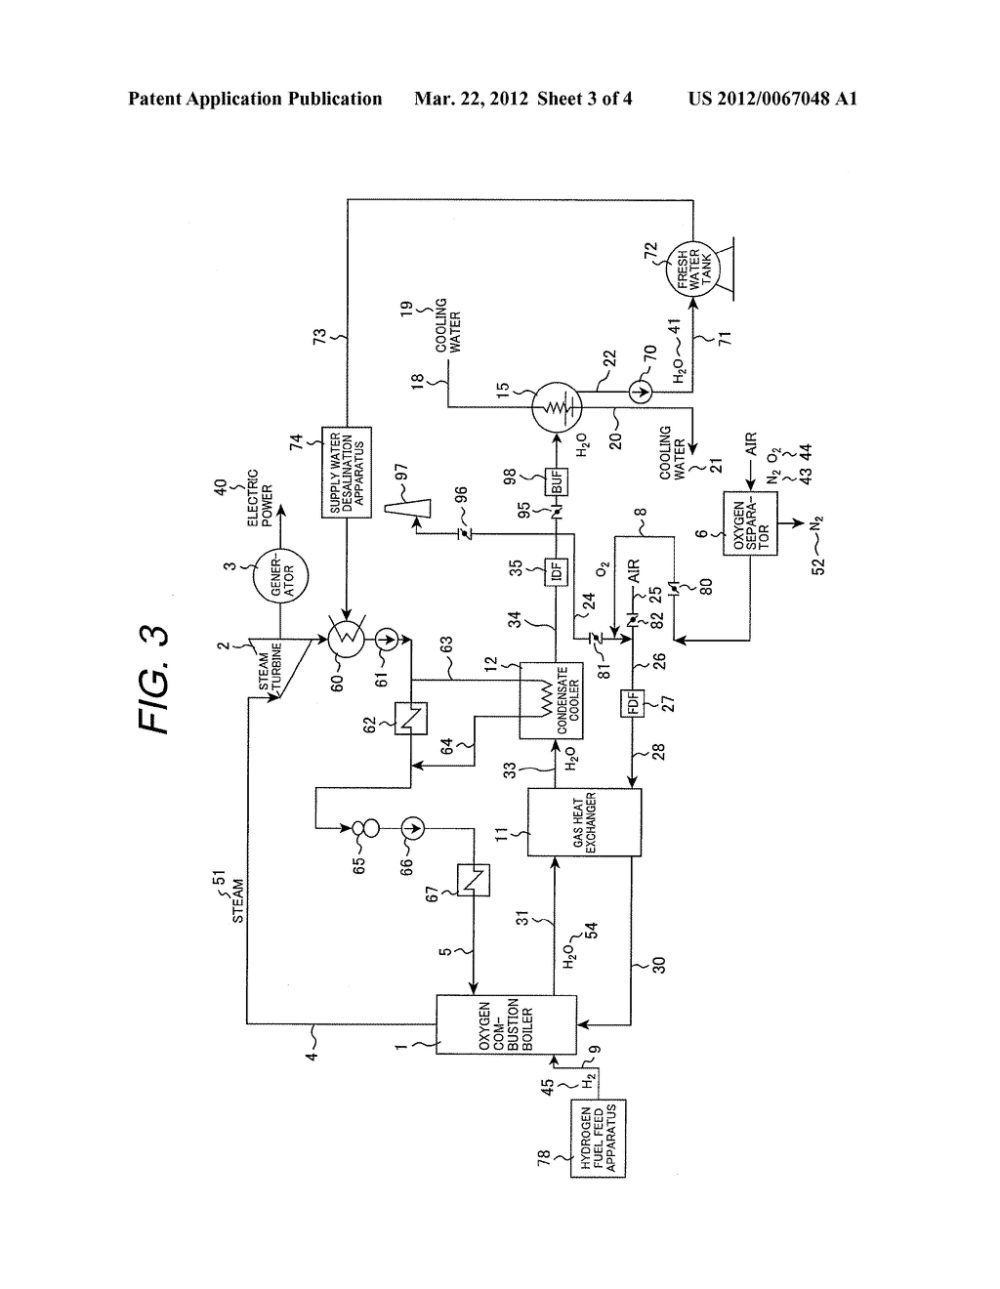 medium resolution of multipurpose thermal power plant system diagram schematic and image 04